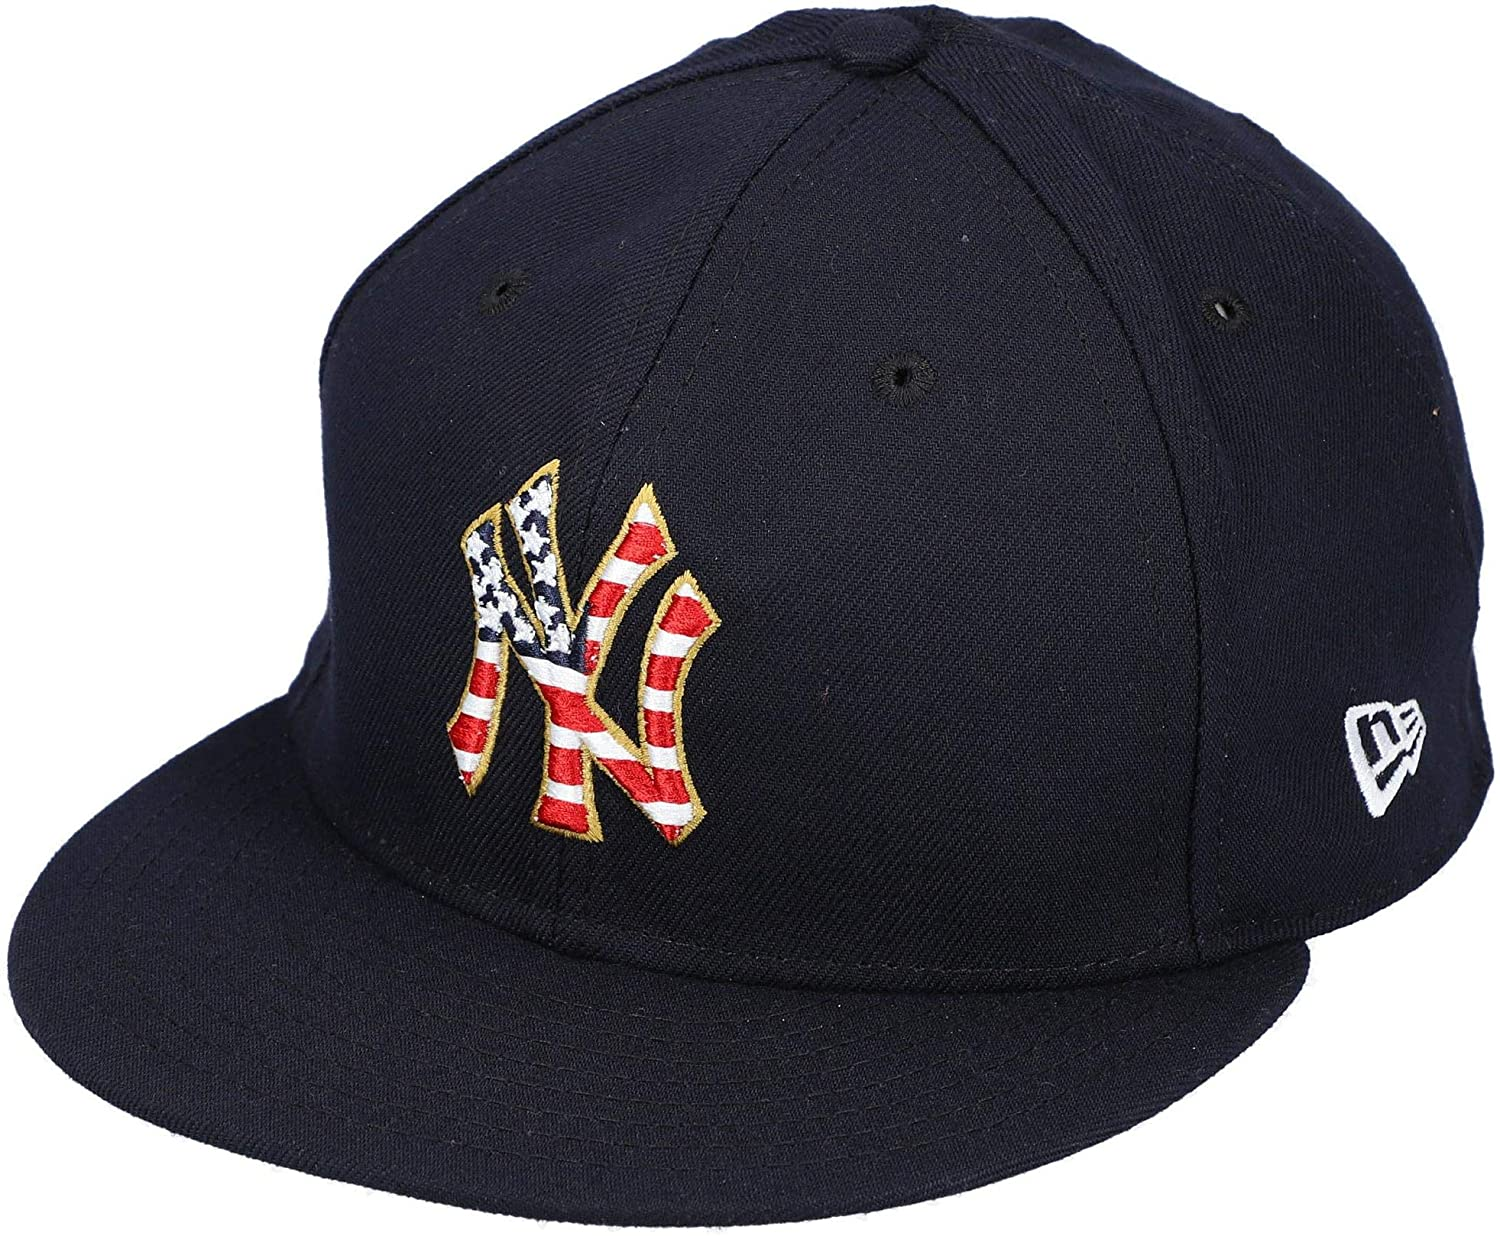 A.J. Cole New York Yankees Player-Issued #67 Navy Stars and Stripes Cap vs. Atlanta Braves on July 4, 2018 - Size 7 1/2 - Fanatics Authentic Certified